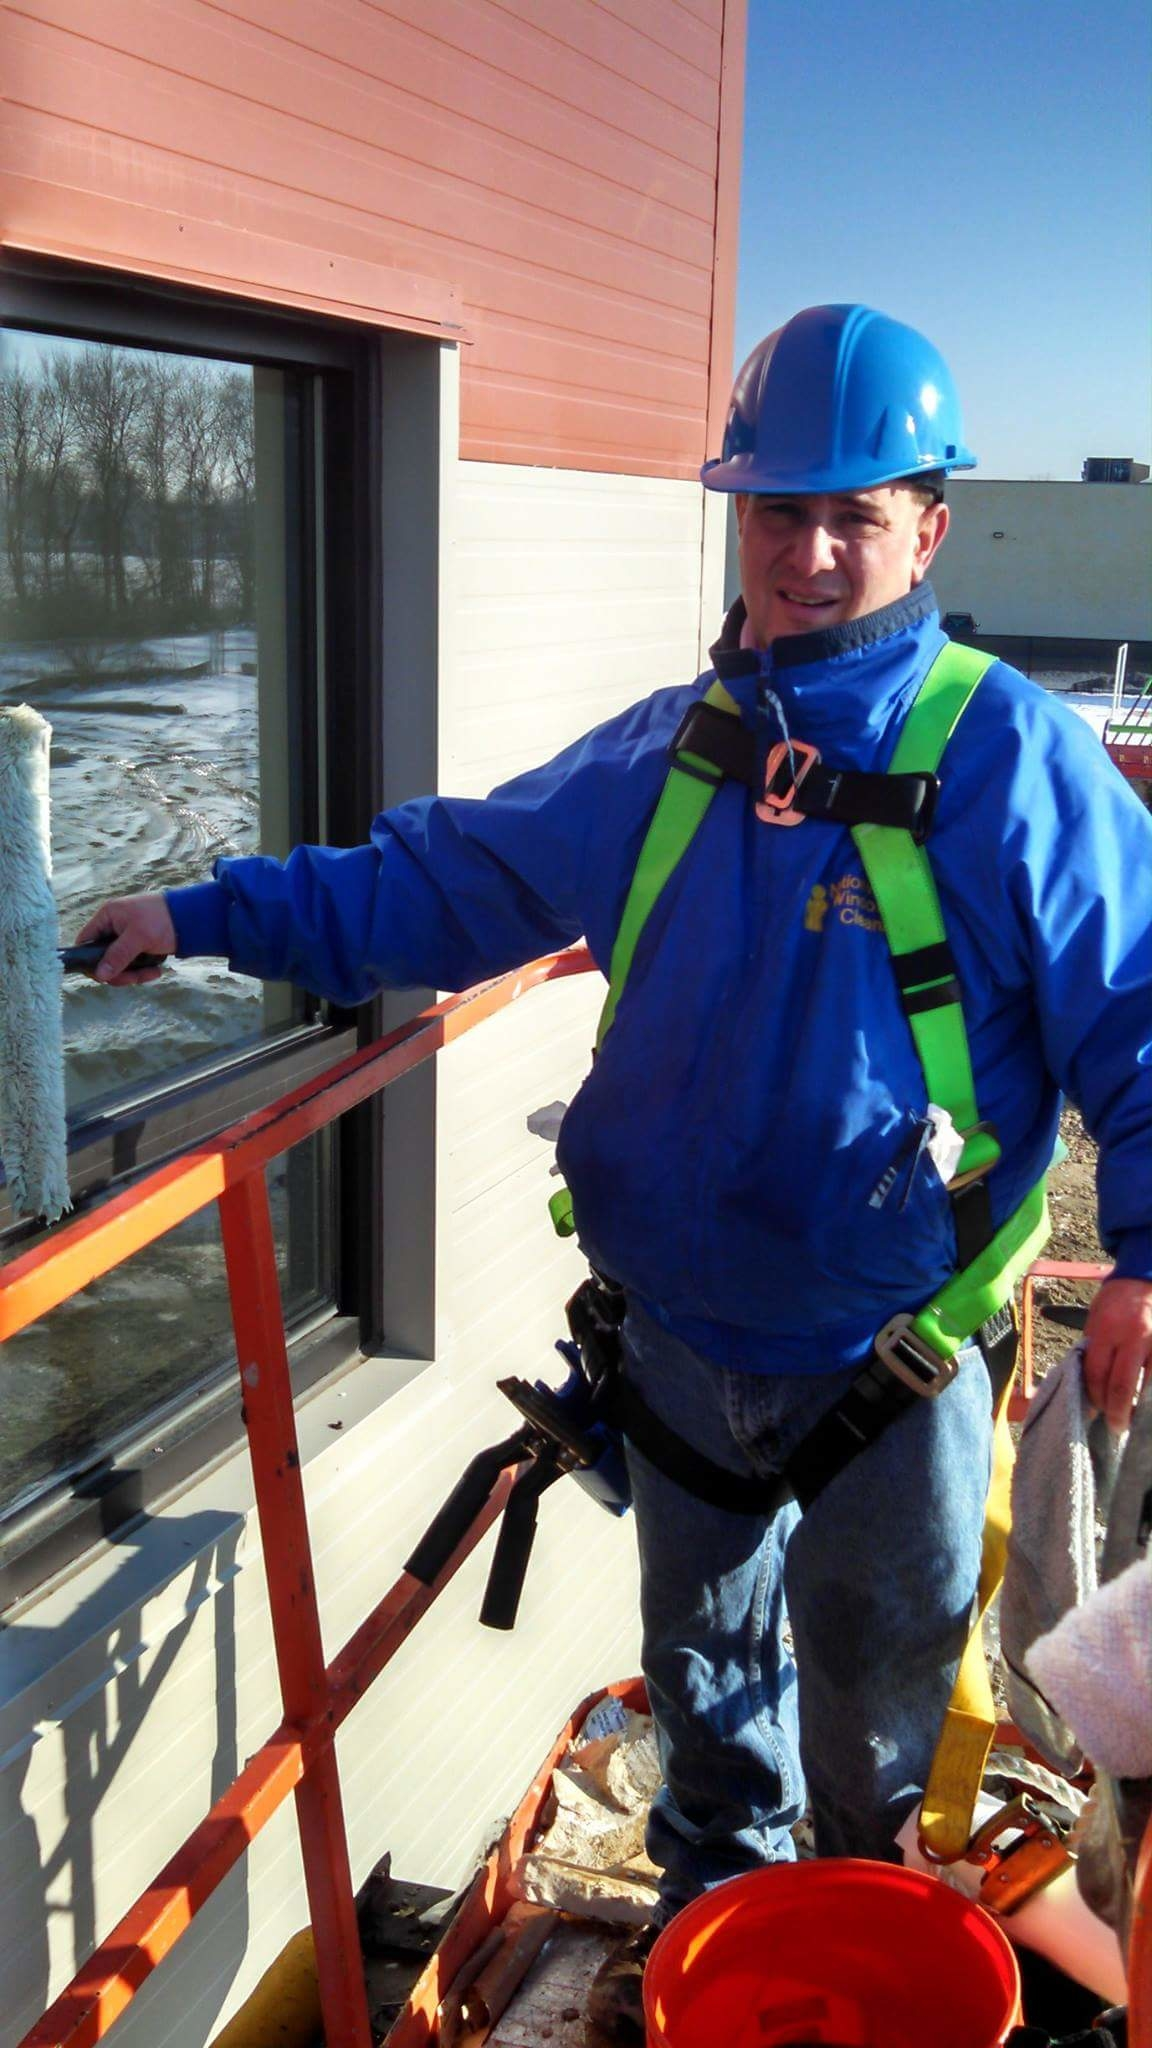 Family window cleaning & property maintenance image 1